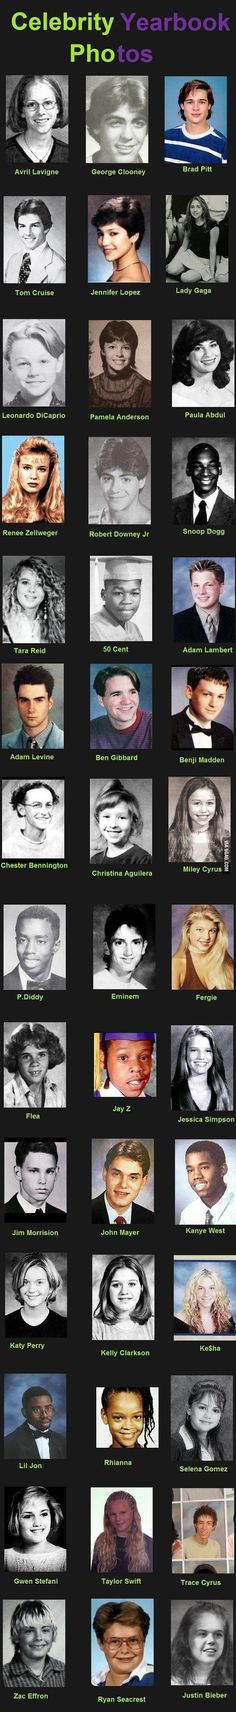 9GAG - Just some celebrity yearbook photos